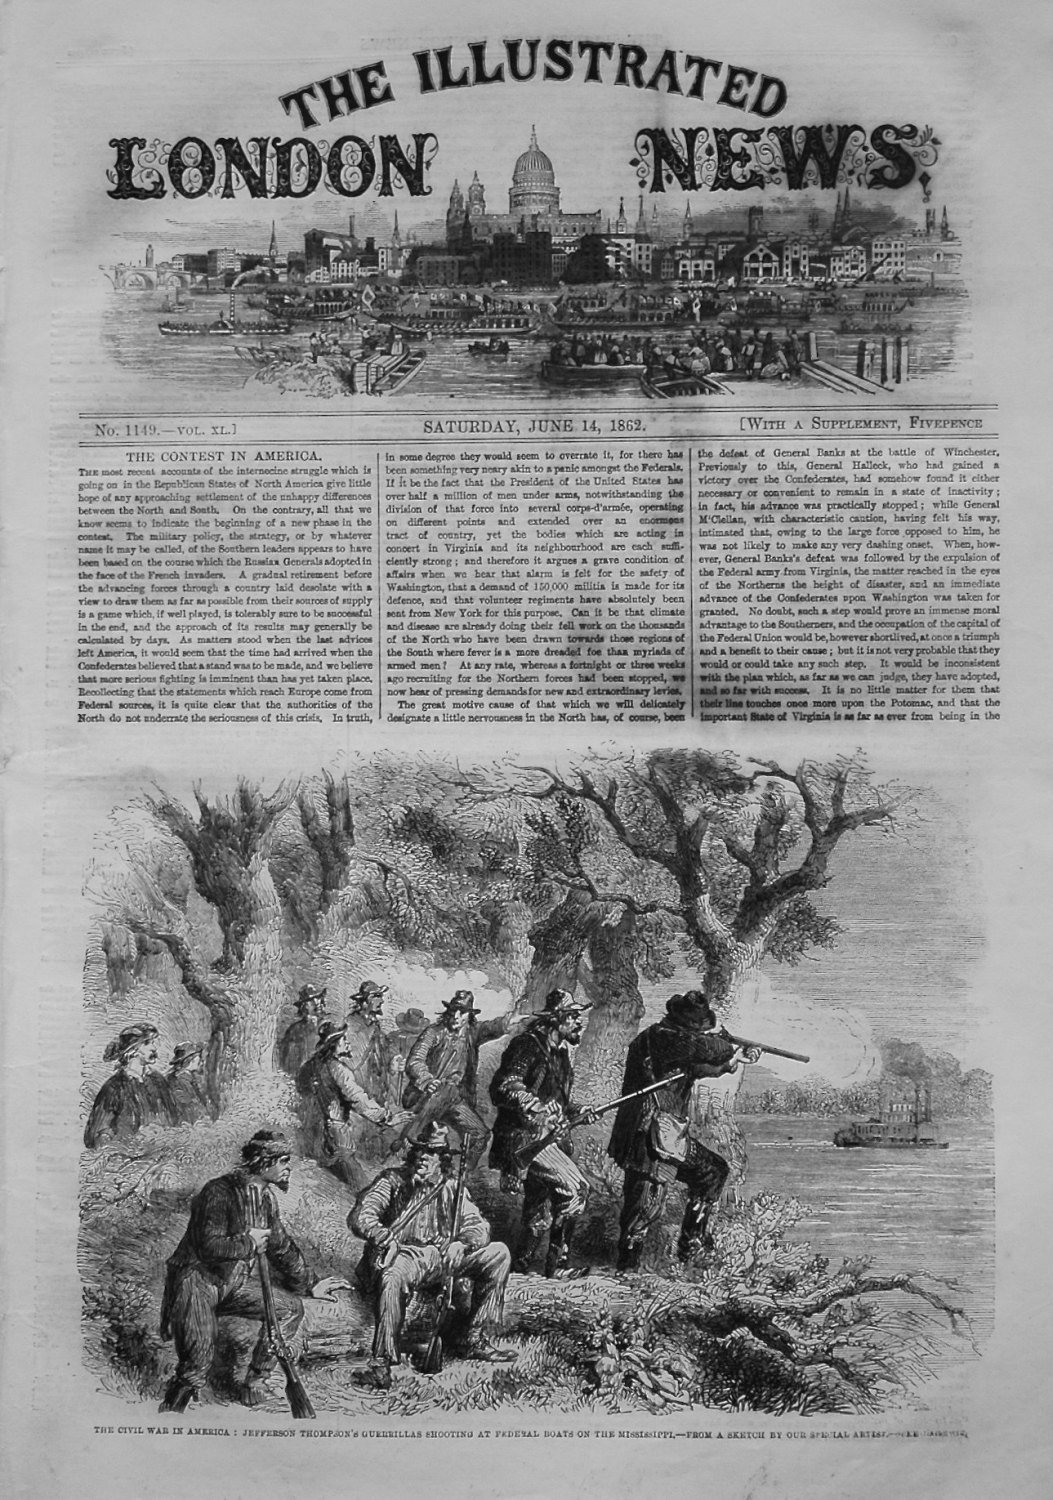 Illustrated London News, June 14th 1862.